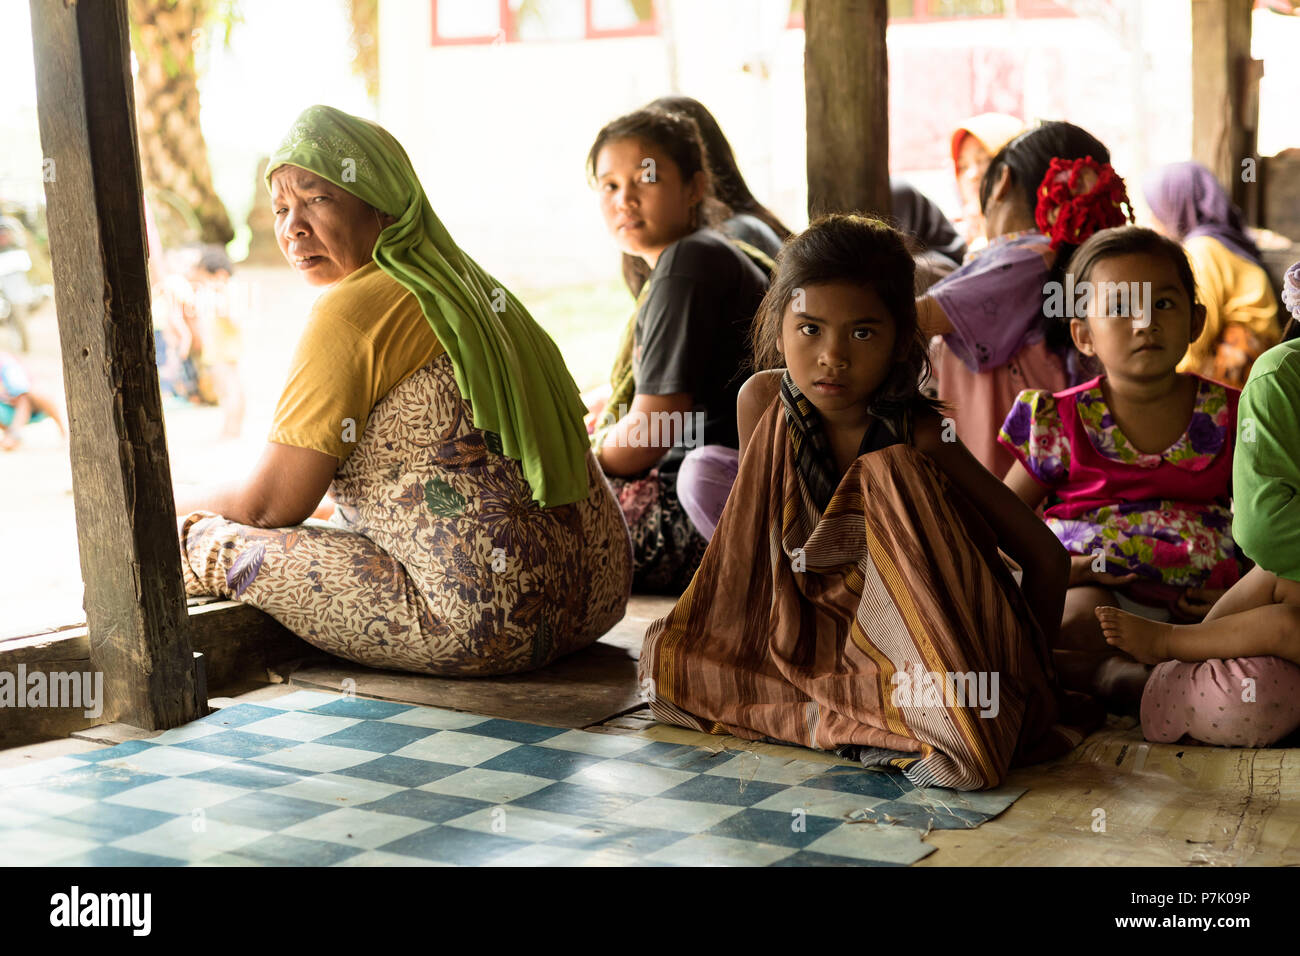 Young girl and other children and women in the port city of Singkil, Indonesia, Stock Photo